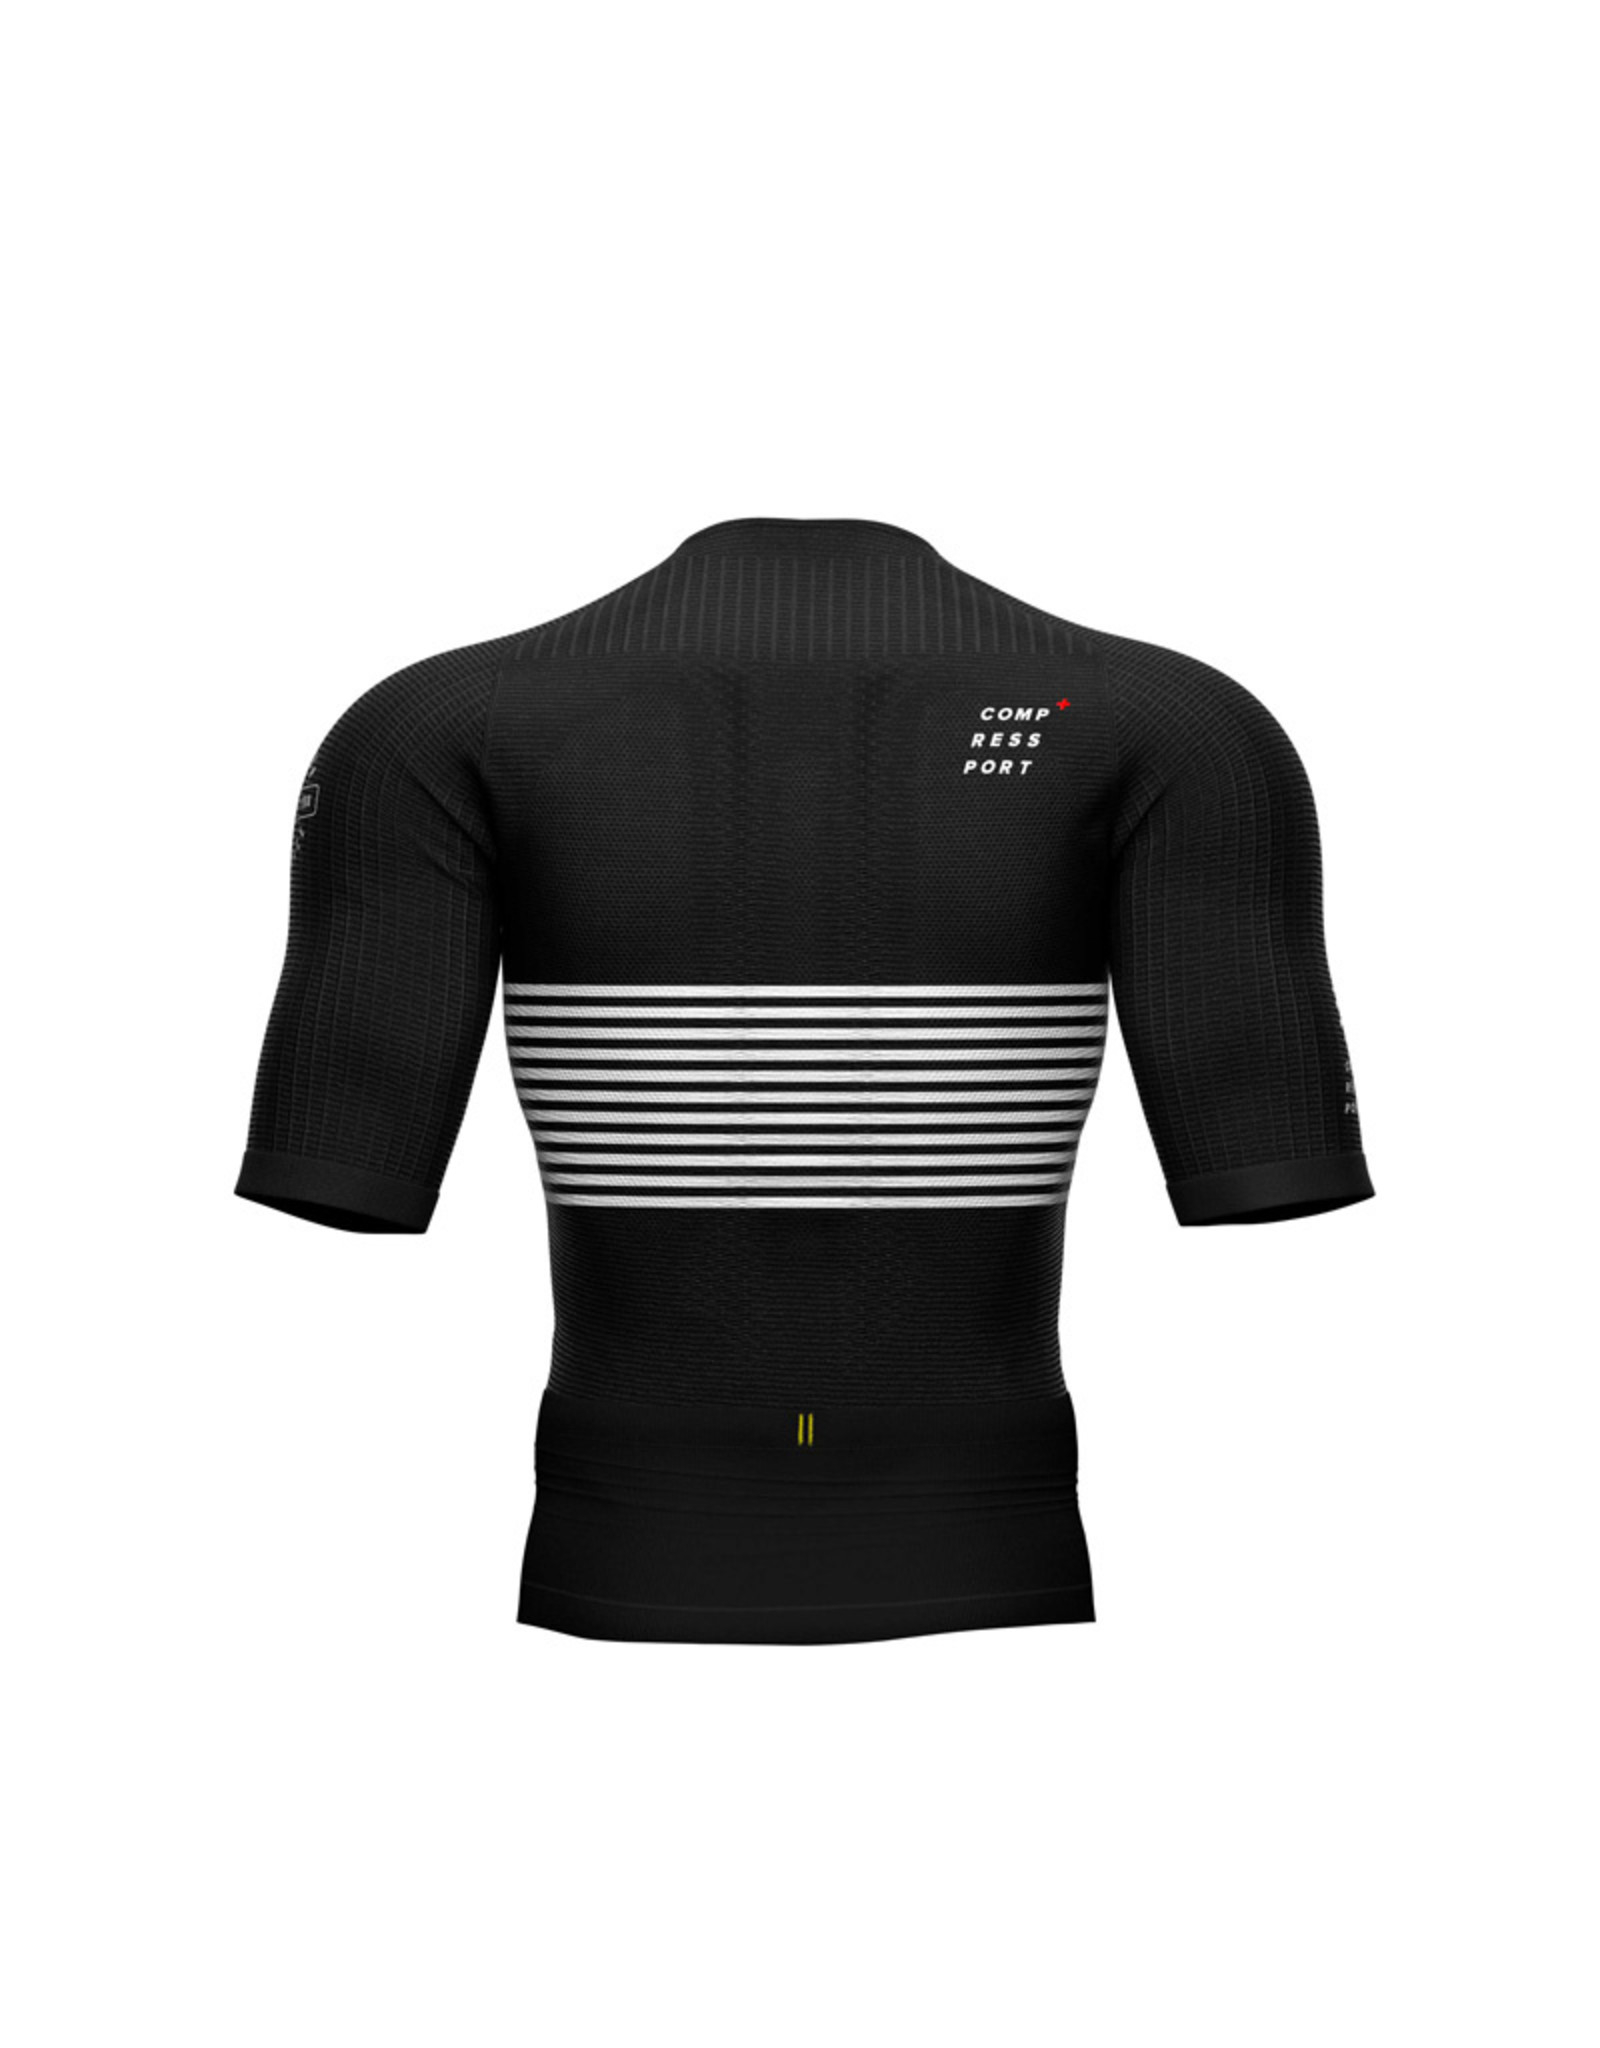 Compressport Tri Postural Ss Top Triathlon Shirt - Noir